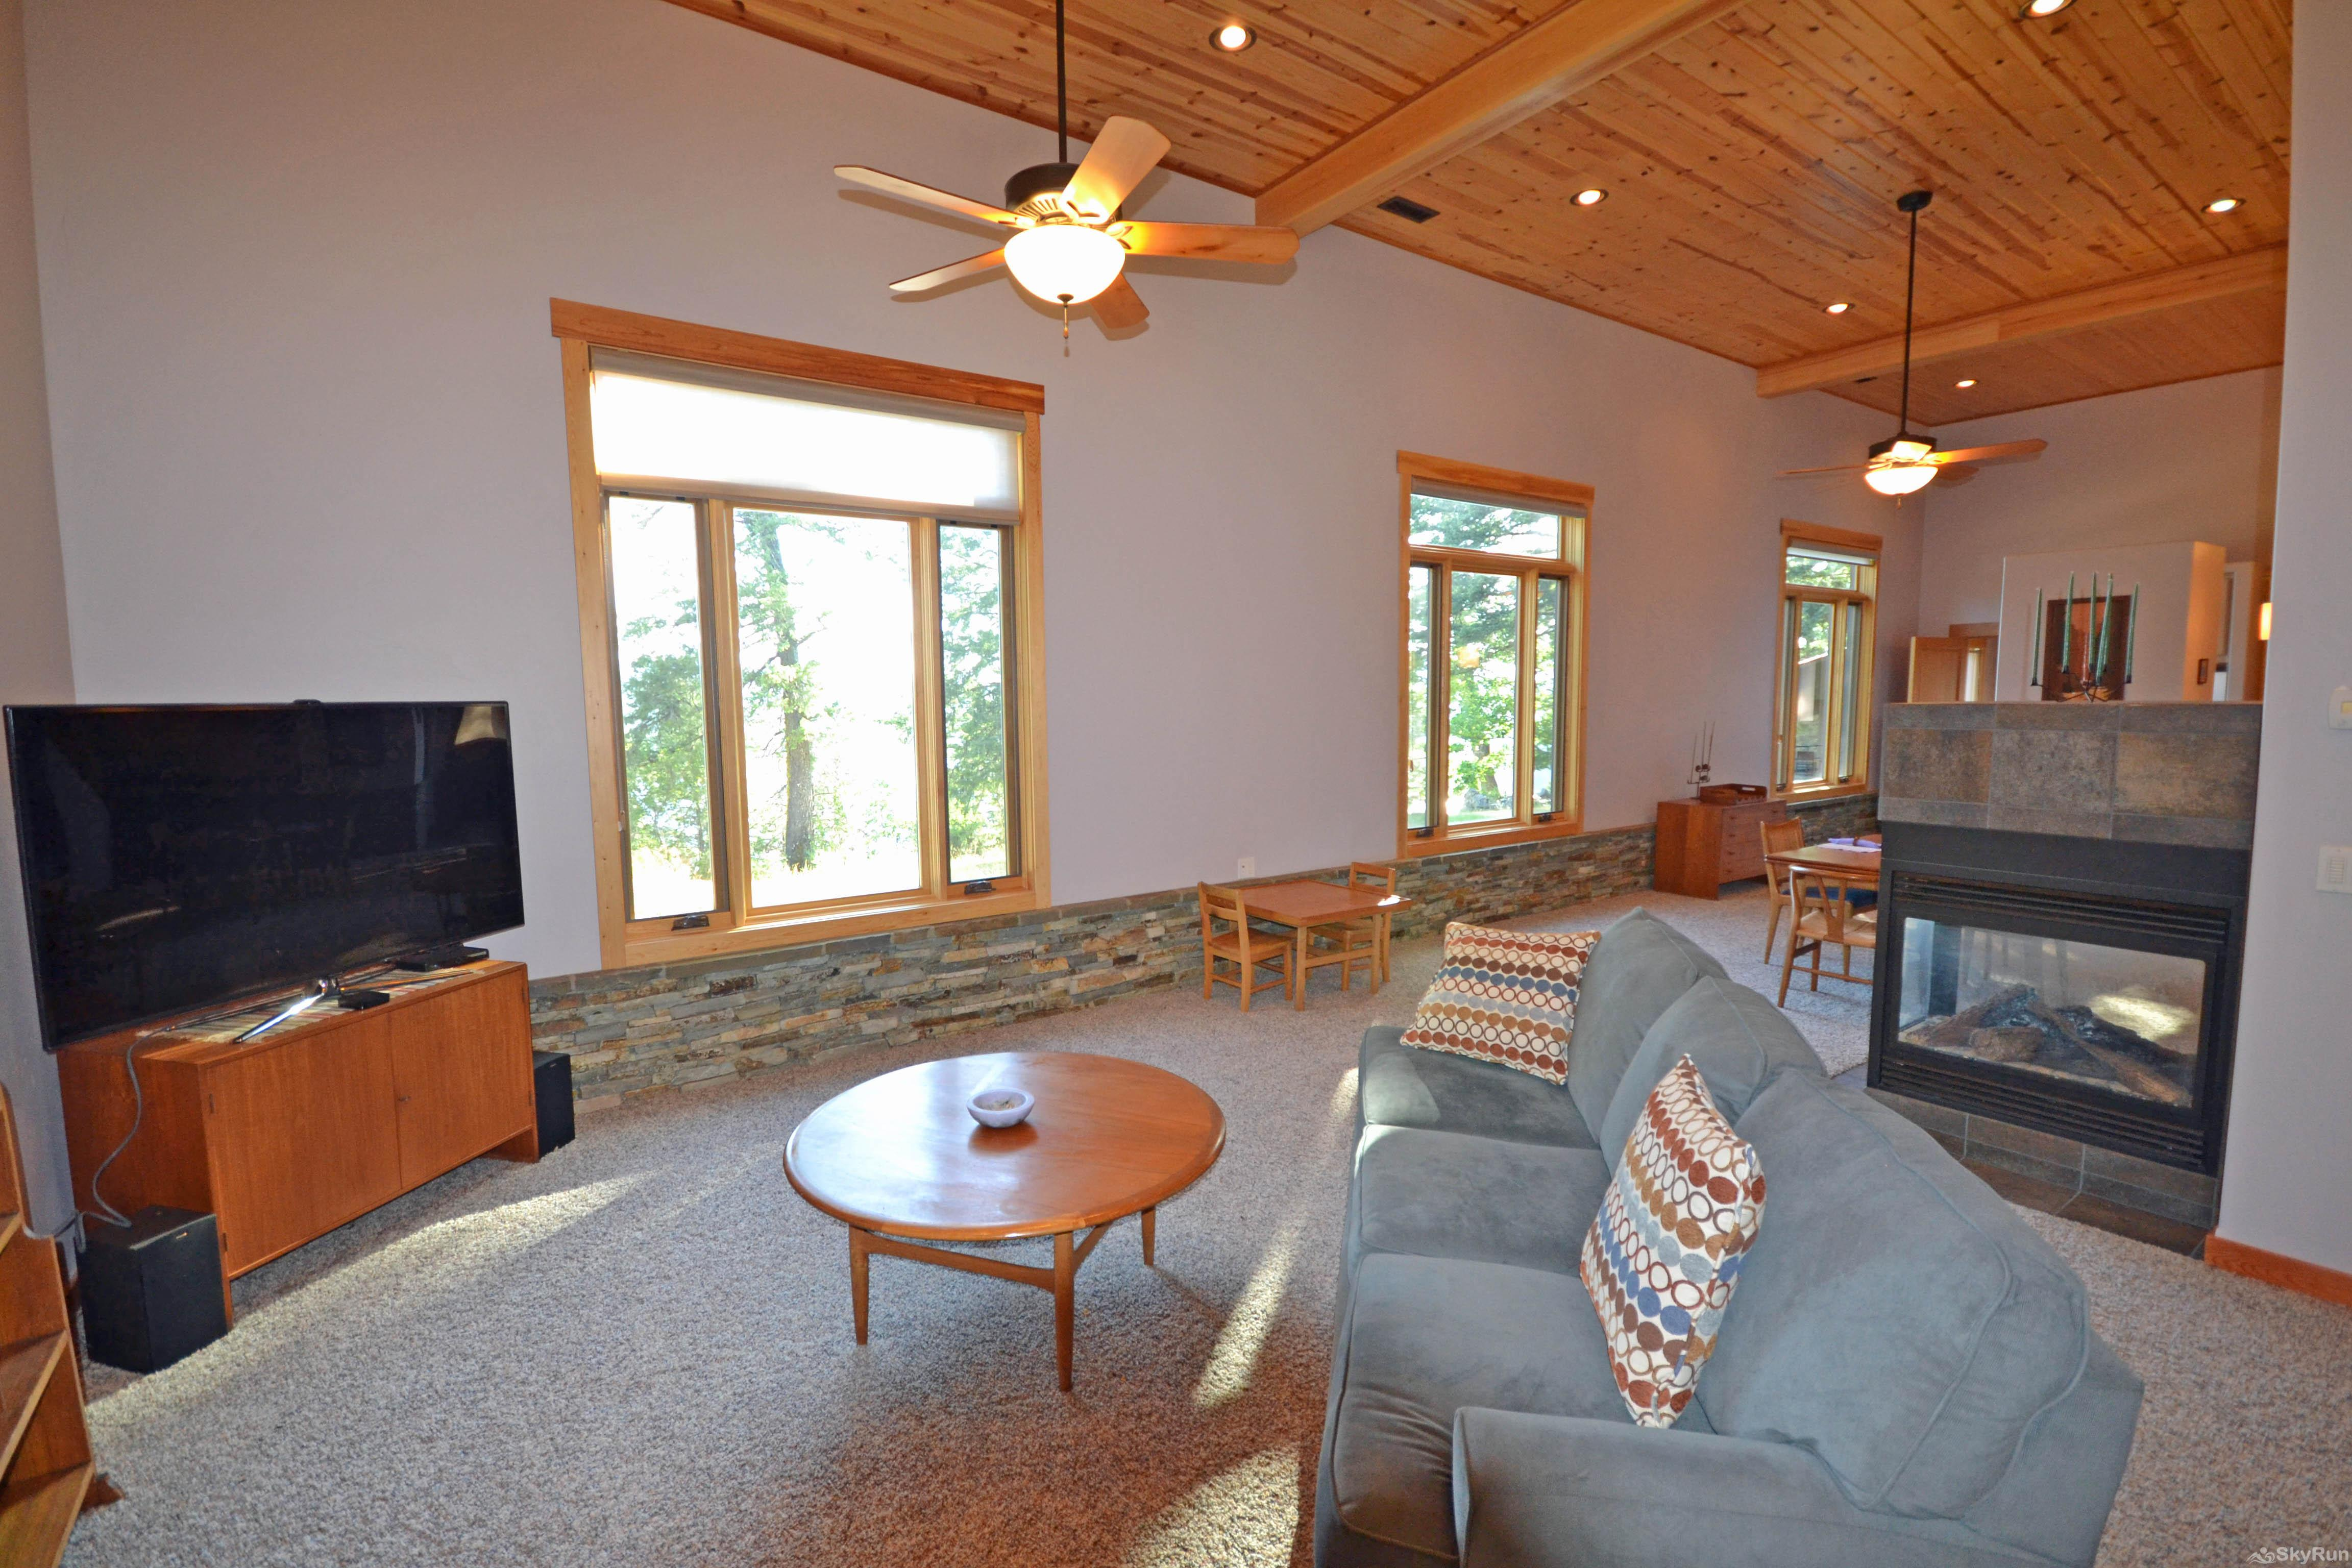 Lodgepole Ridge Cabin Living Room, cont.